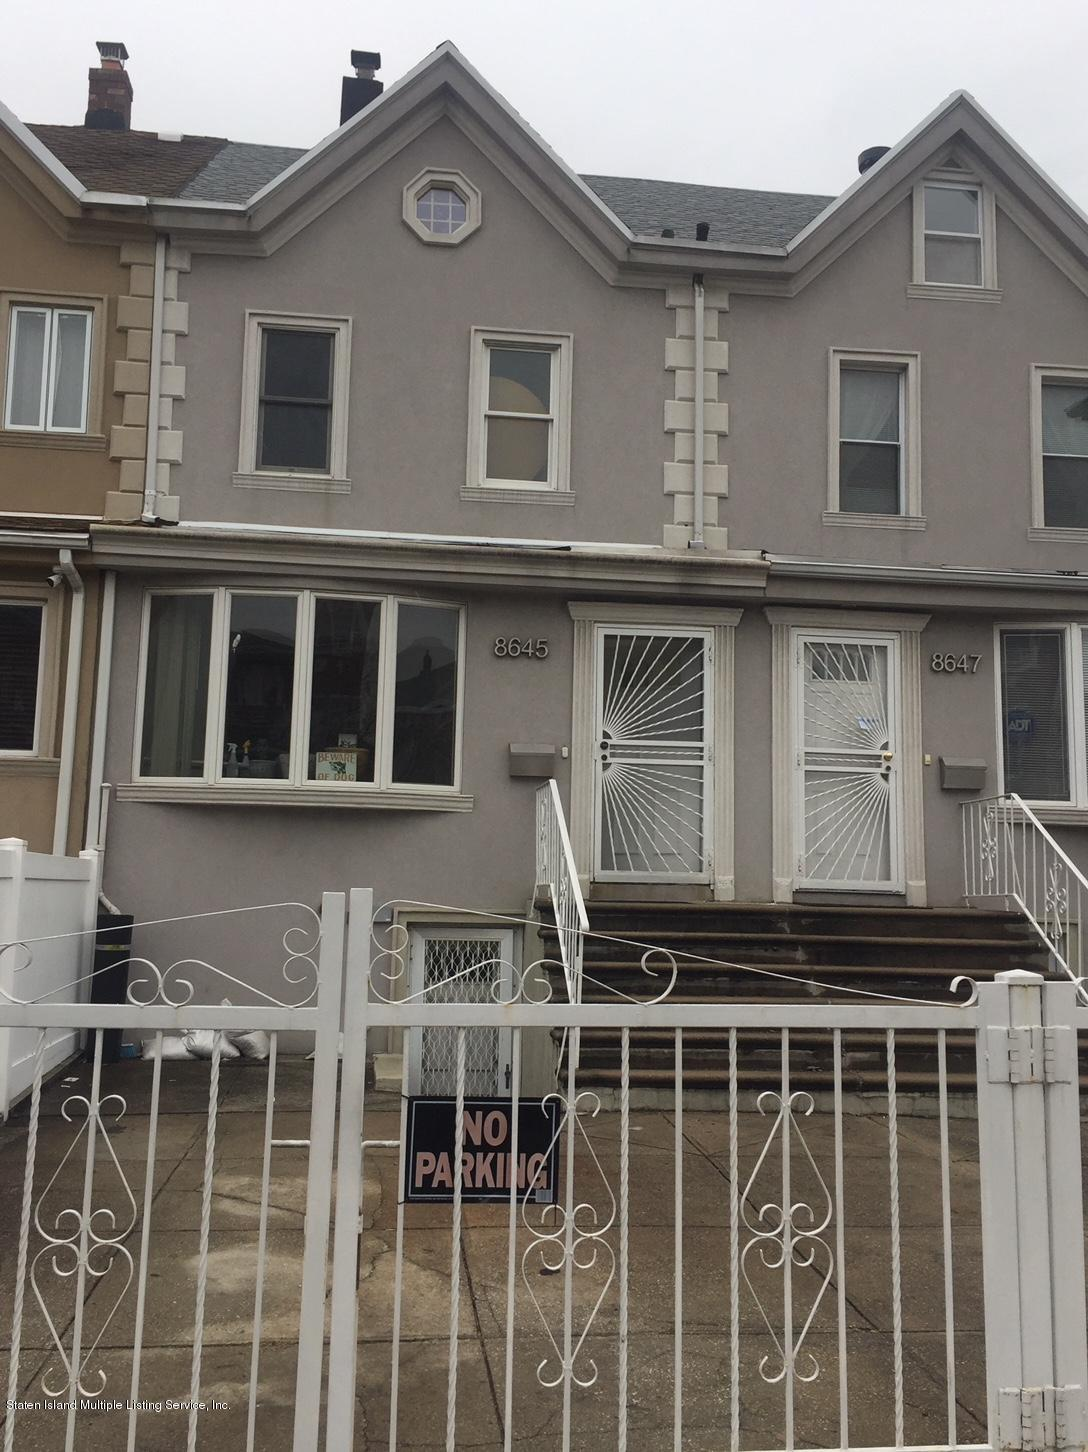 Single Family - Attached in Bath Beach - 8645 Bay 16th Street  Brooklyn, NY 11214